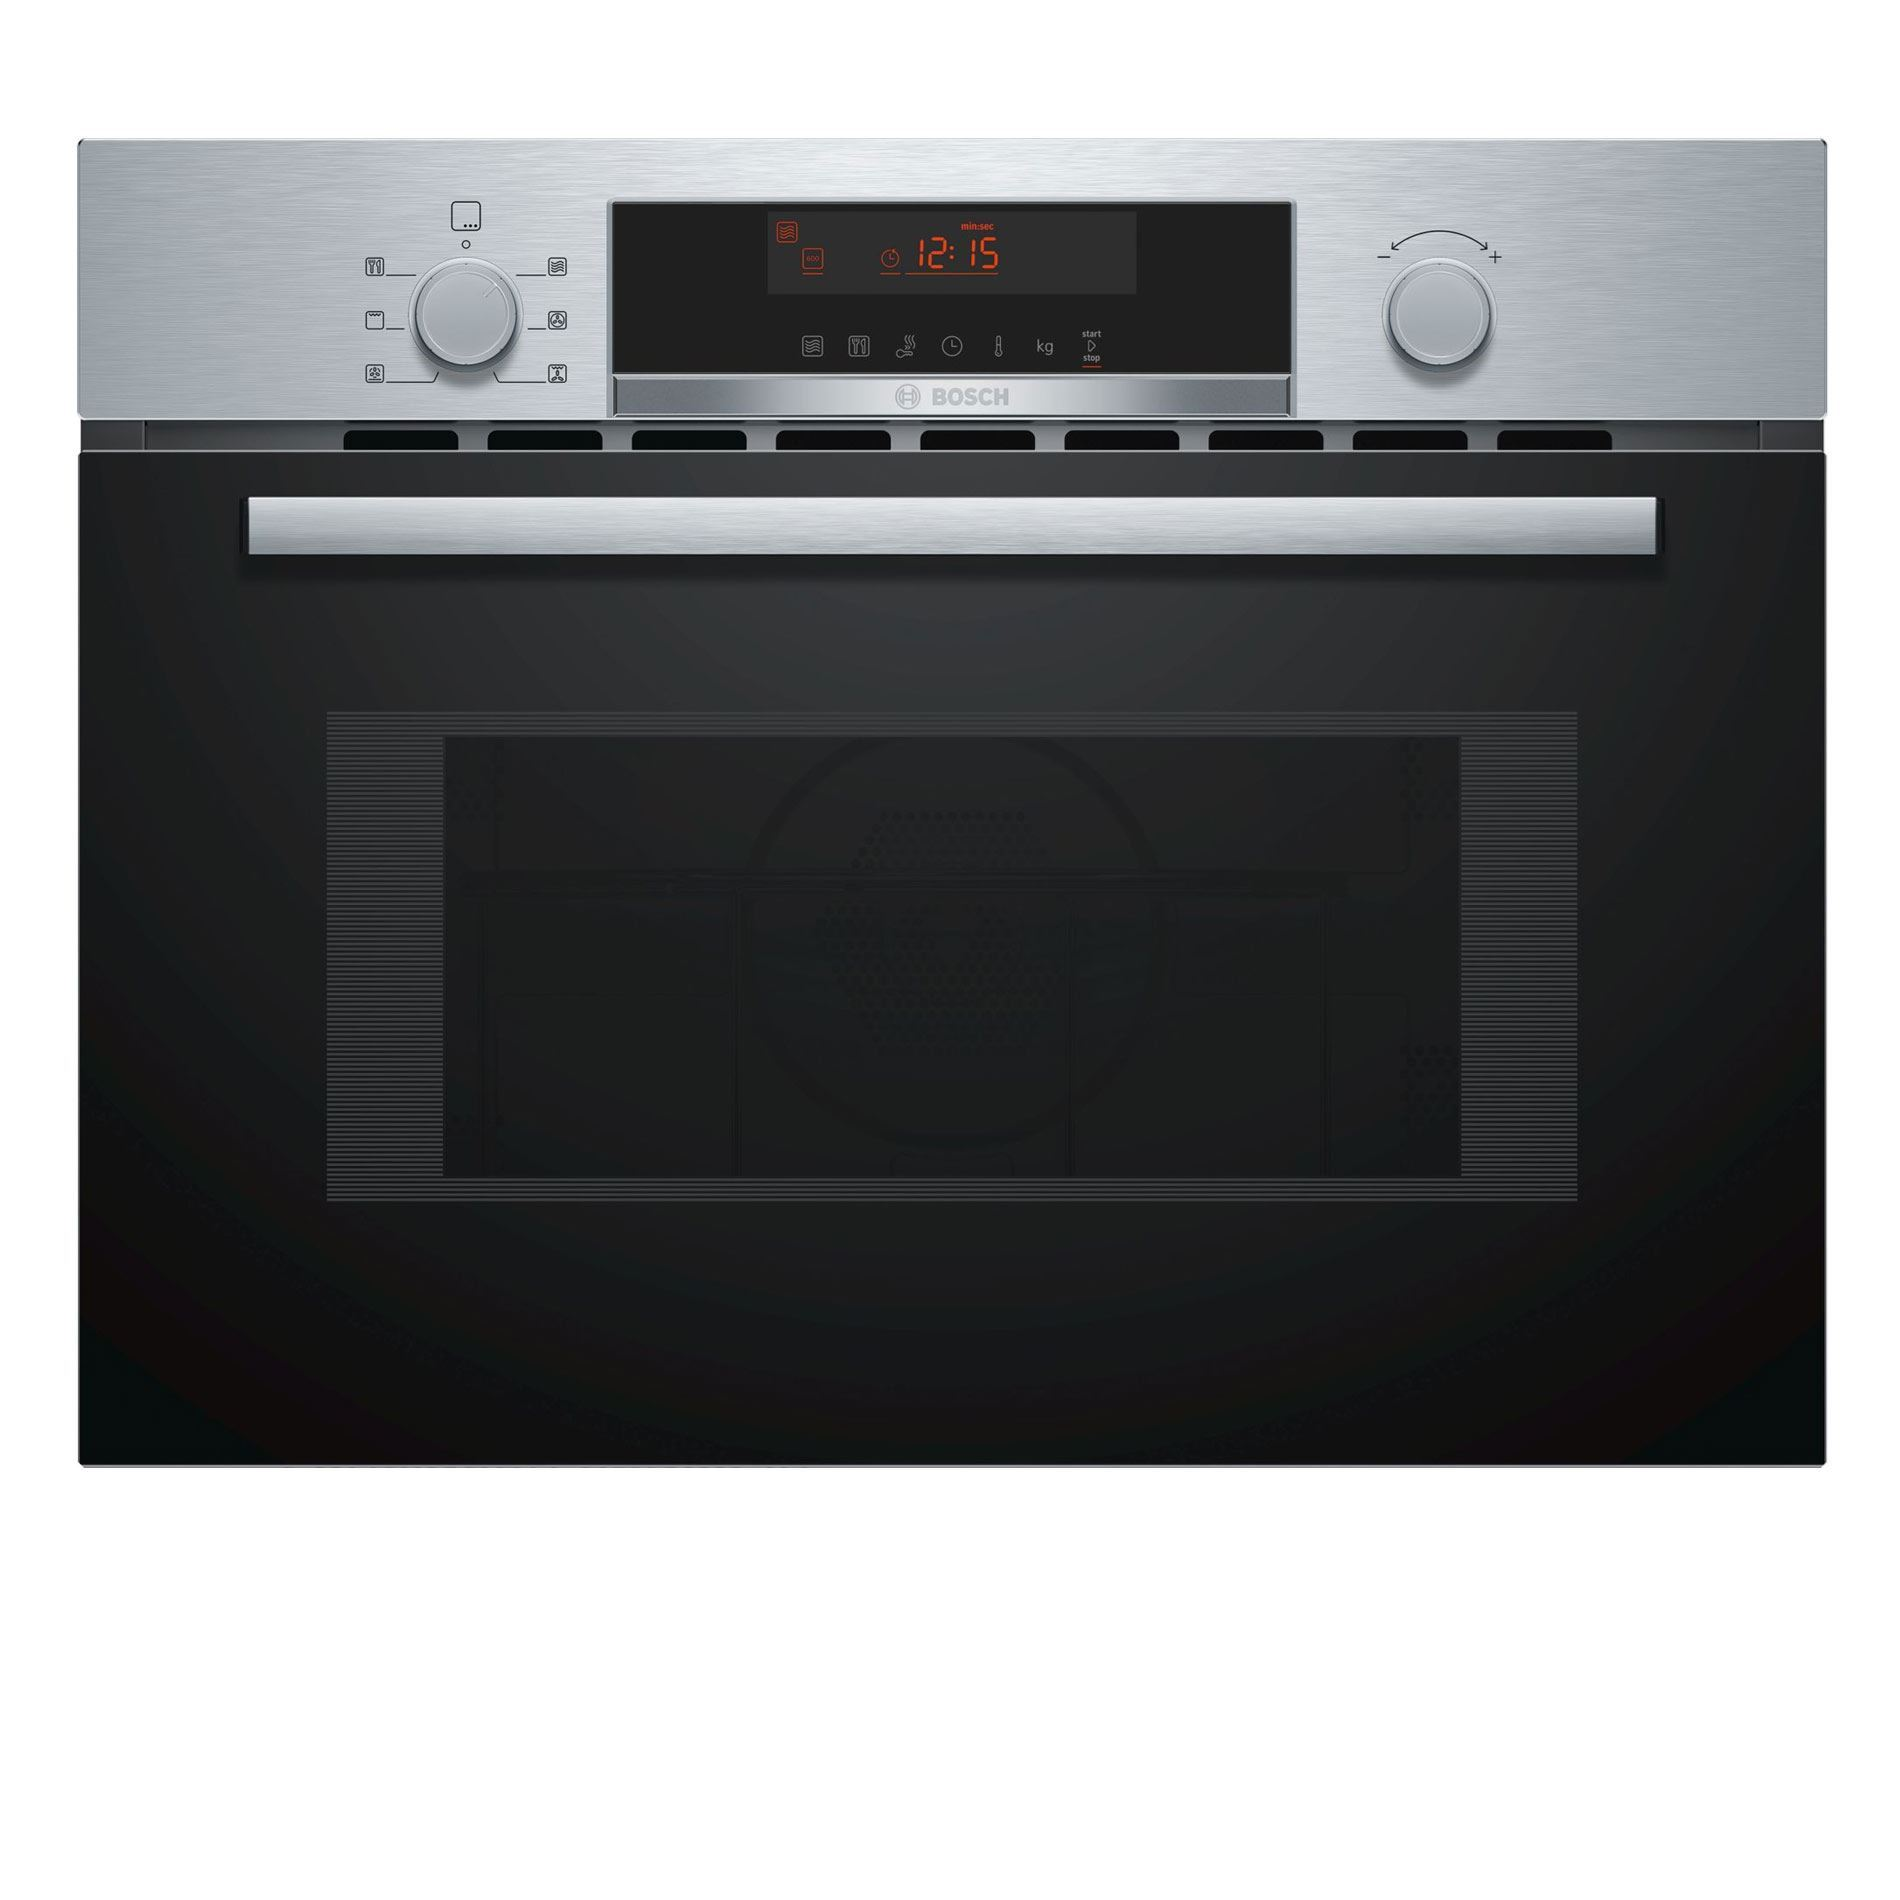 Picture of CMA583MS0B Compact Combi Microwave Oven